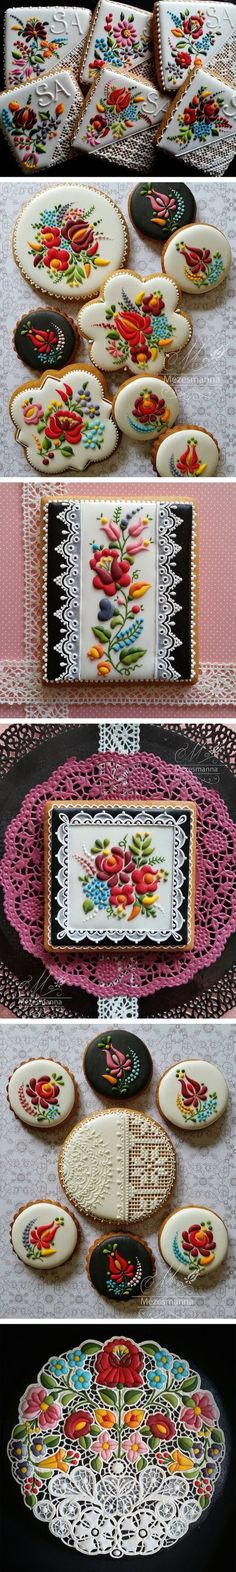 russian-ukraine style decorations on cookies, look like traditional embroidery